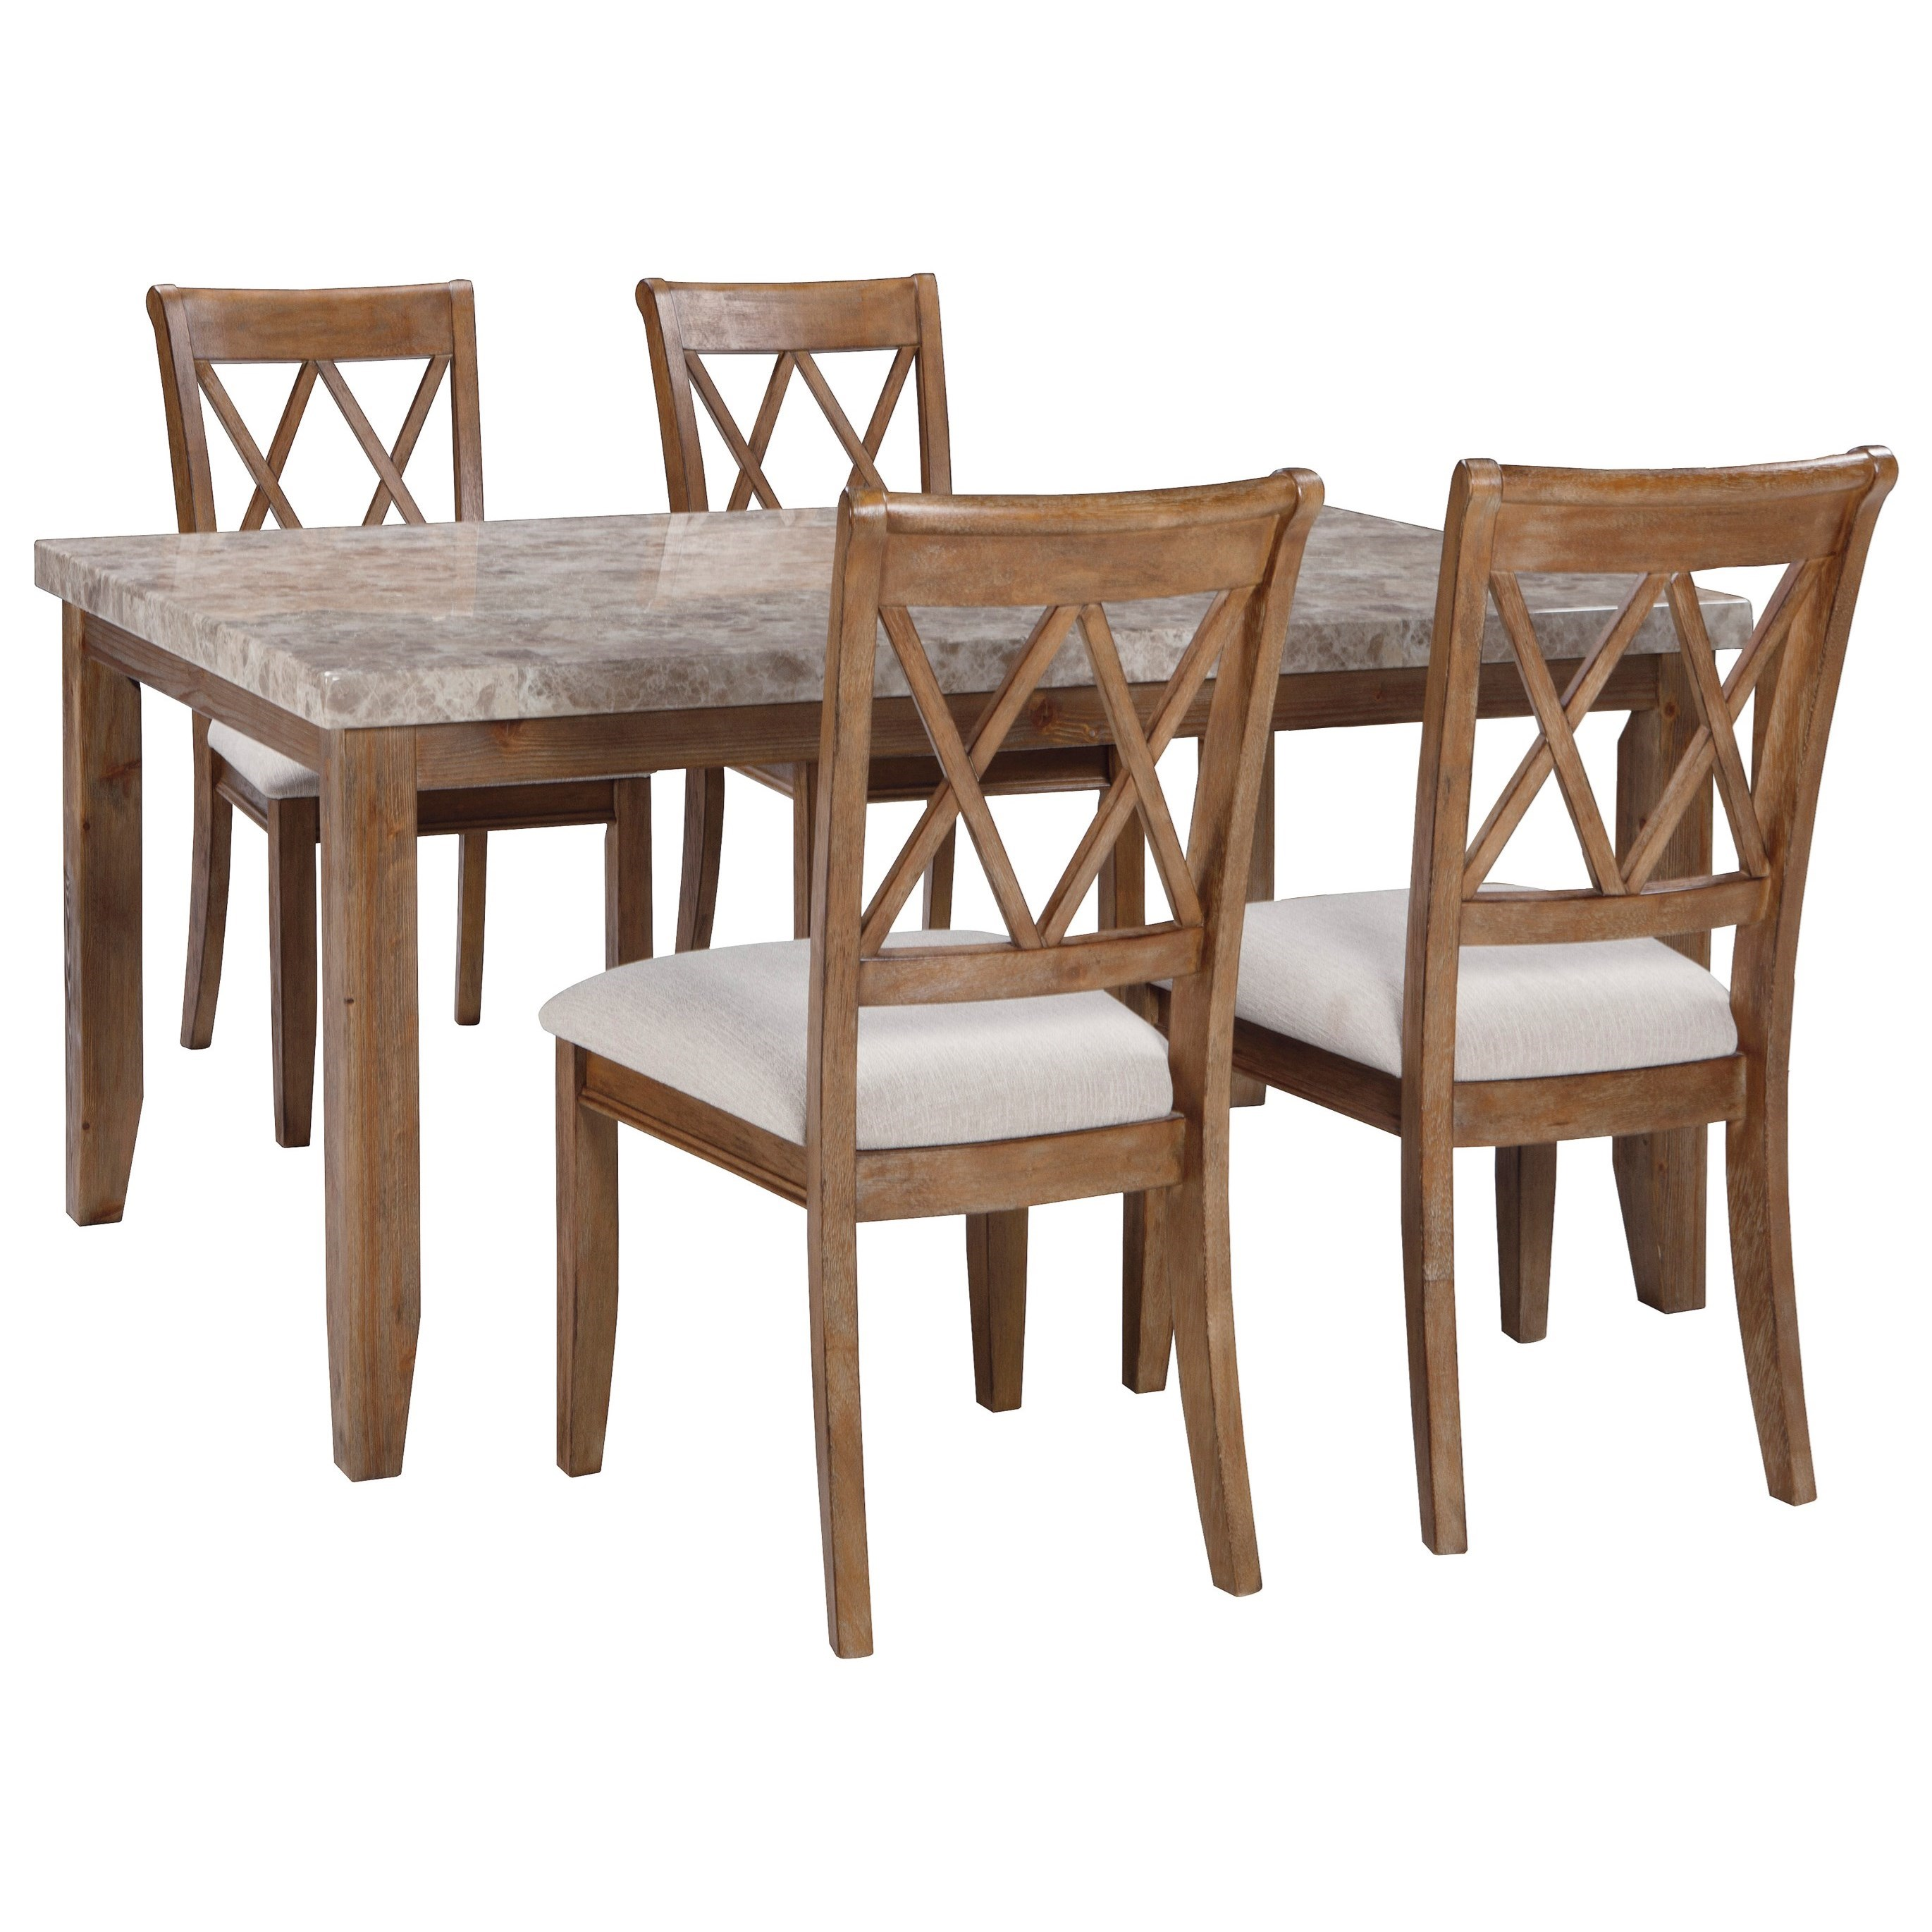 Signature Design by Ashley Narvilla 5-Piece Rectangular Dining Table Set - Item Number: D559-25+4x01